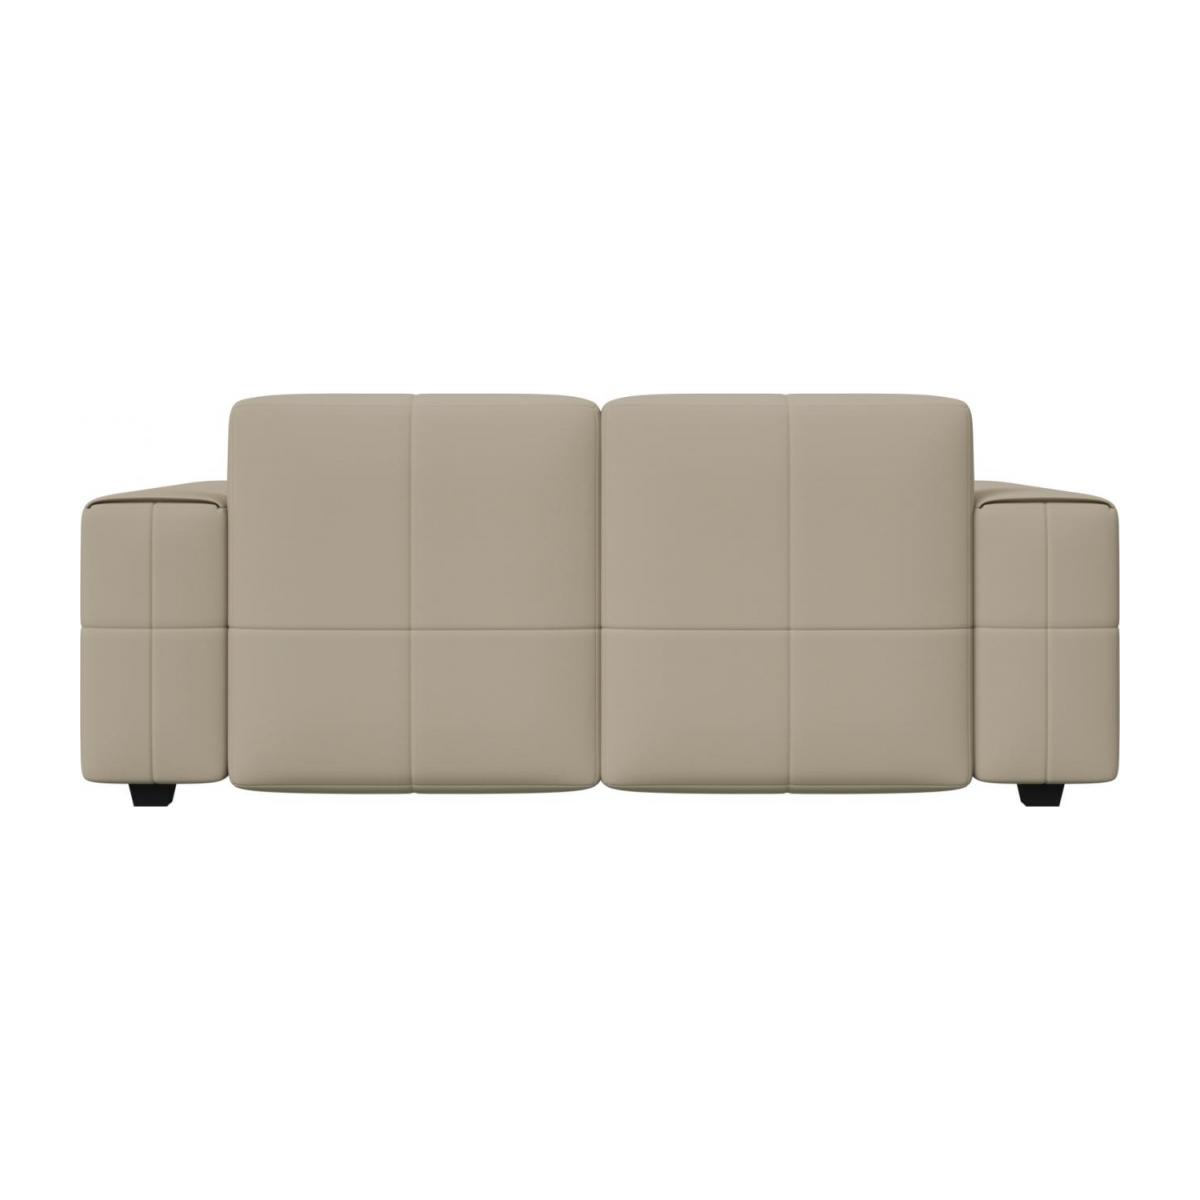 2 seater sofa in Savoy semi-aniline leather, off white n°4